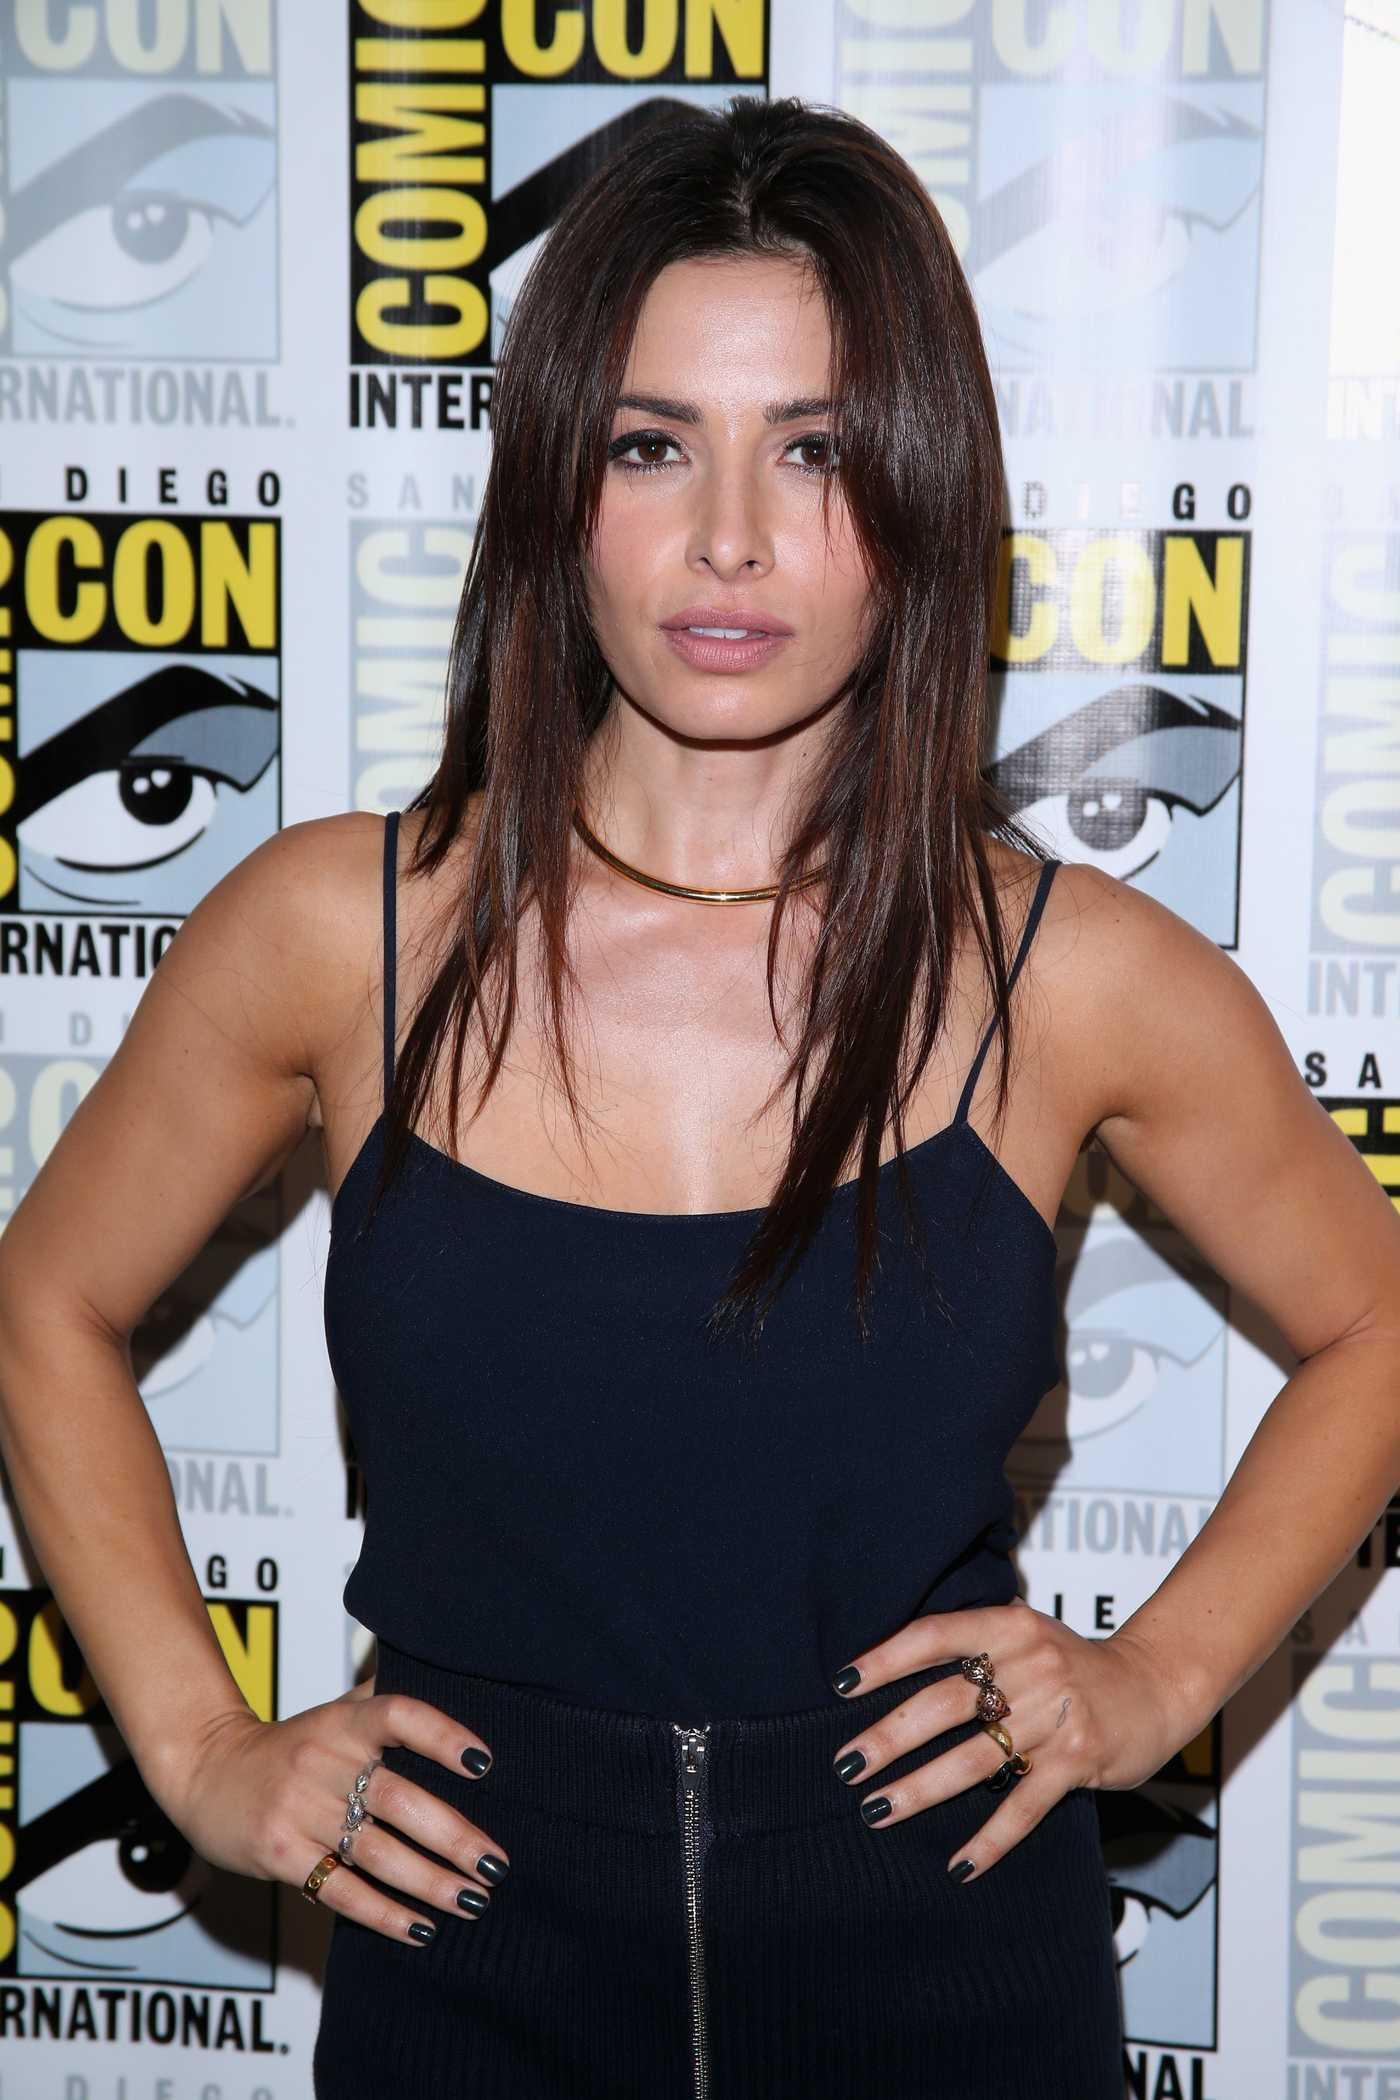 Sarah Shahi Person of Interest Press Line Panel at Comic-Con